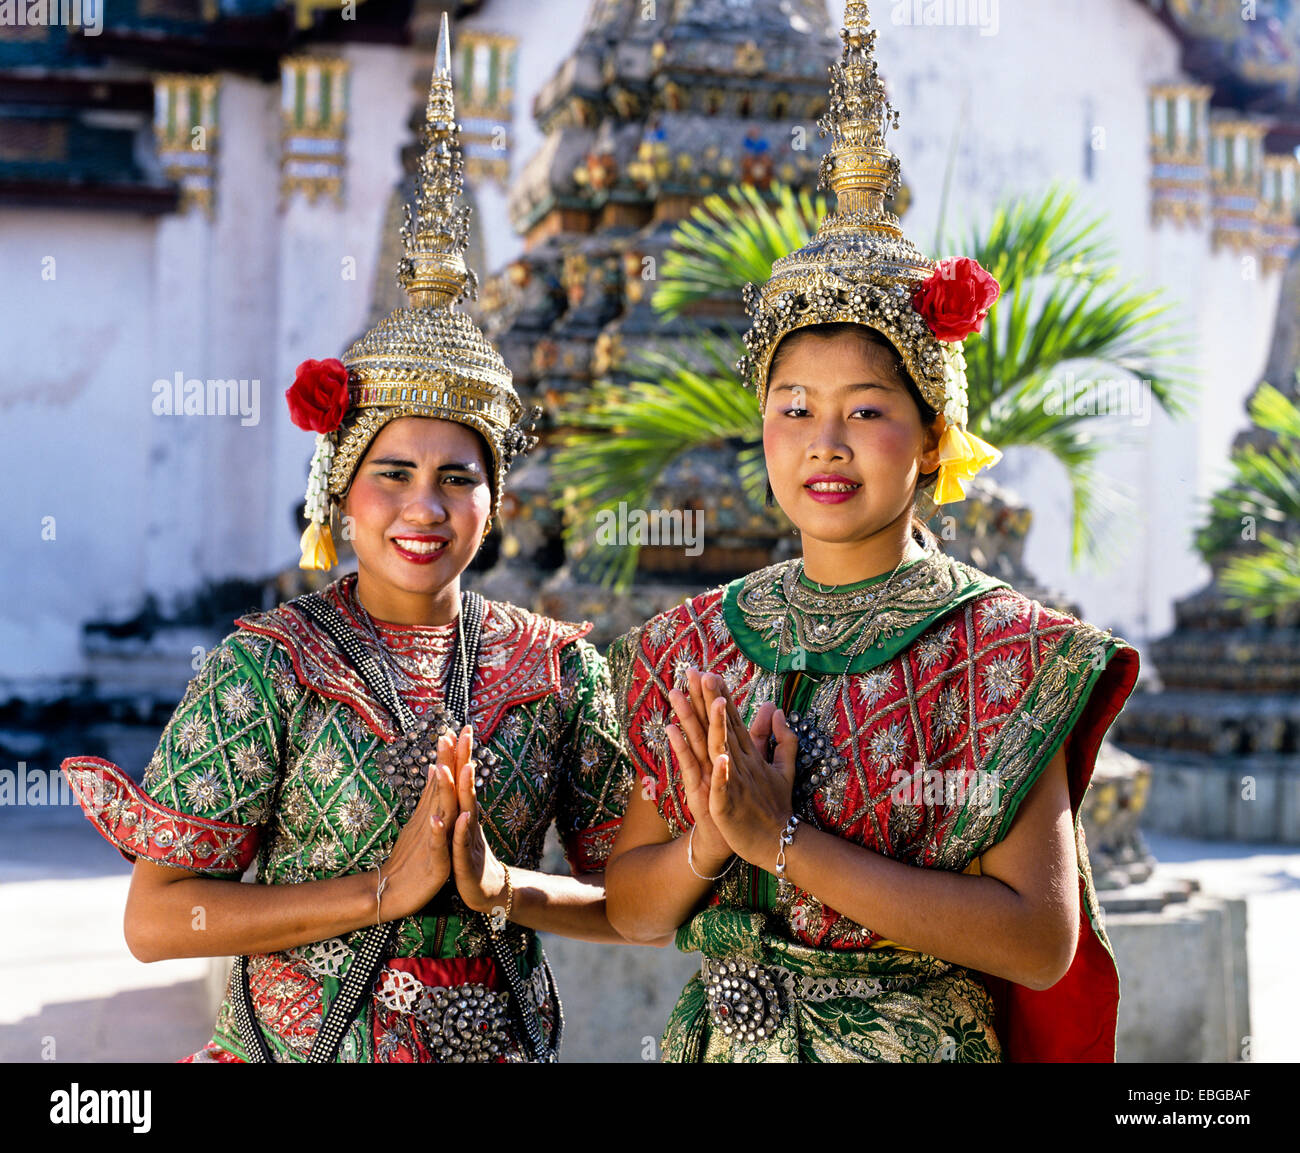 Temple dancers at wat pho displaying the wai a thai gesture of temple dancers at wat pho displaying the wai a thai gesture of greeting two young women wearing traditional dance costumes kristyandbryce Images